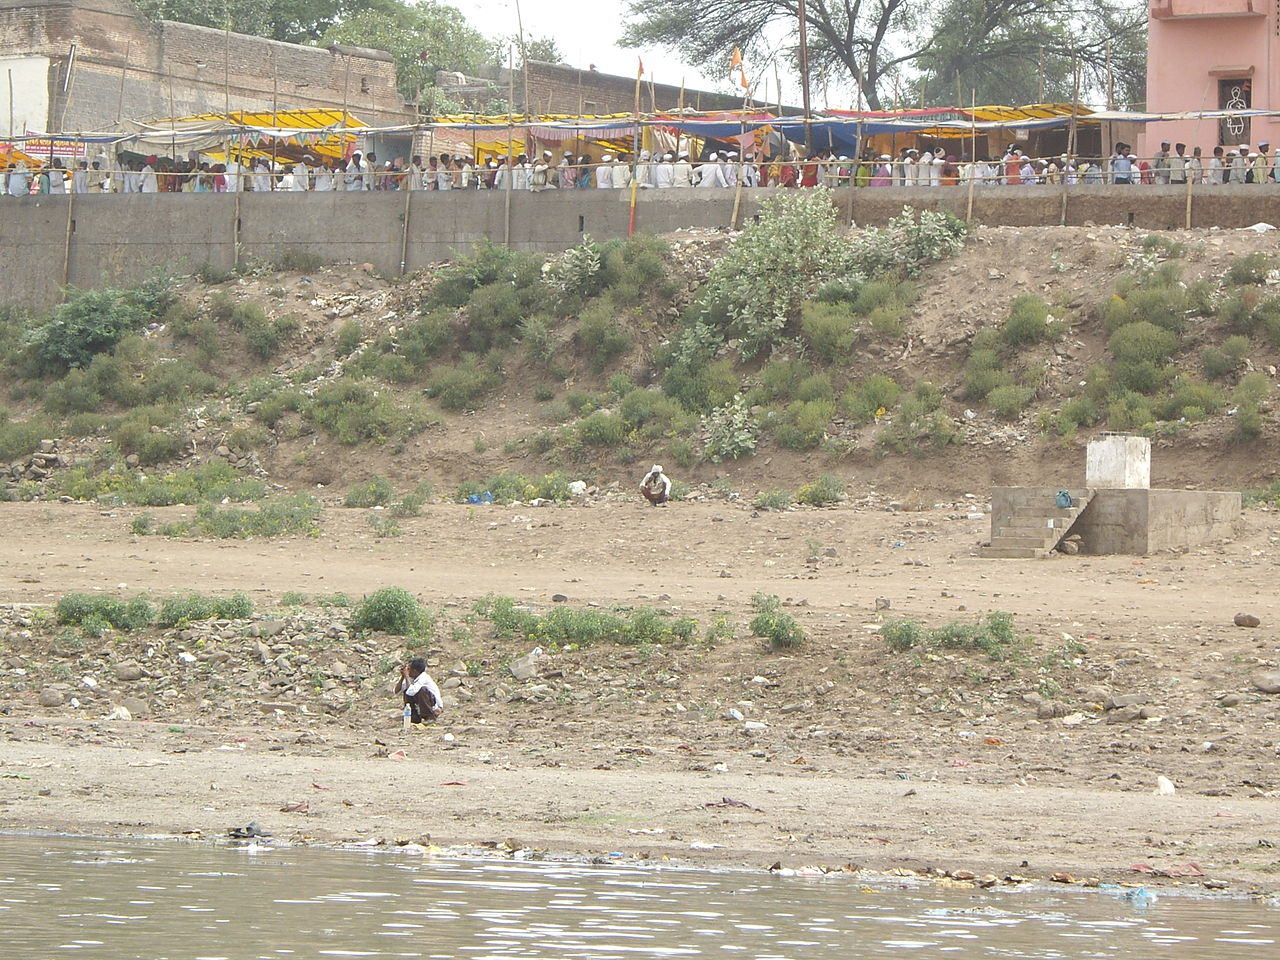 Many people defecate on the banks of the holy river. above is the line to the temple. Image credit: Yaniv Malz via Wikimedia Commons